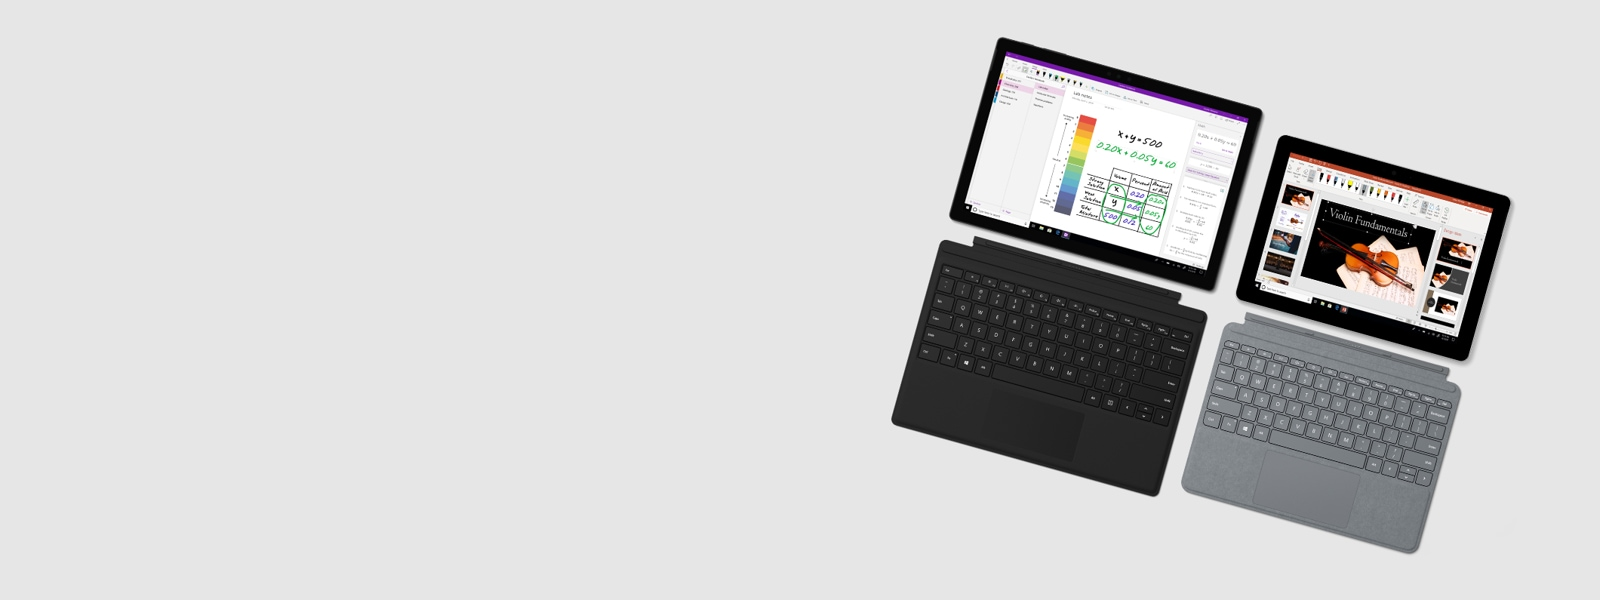 Surface Go y Surface Pro 6